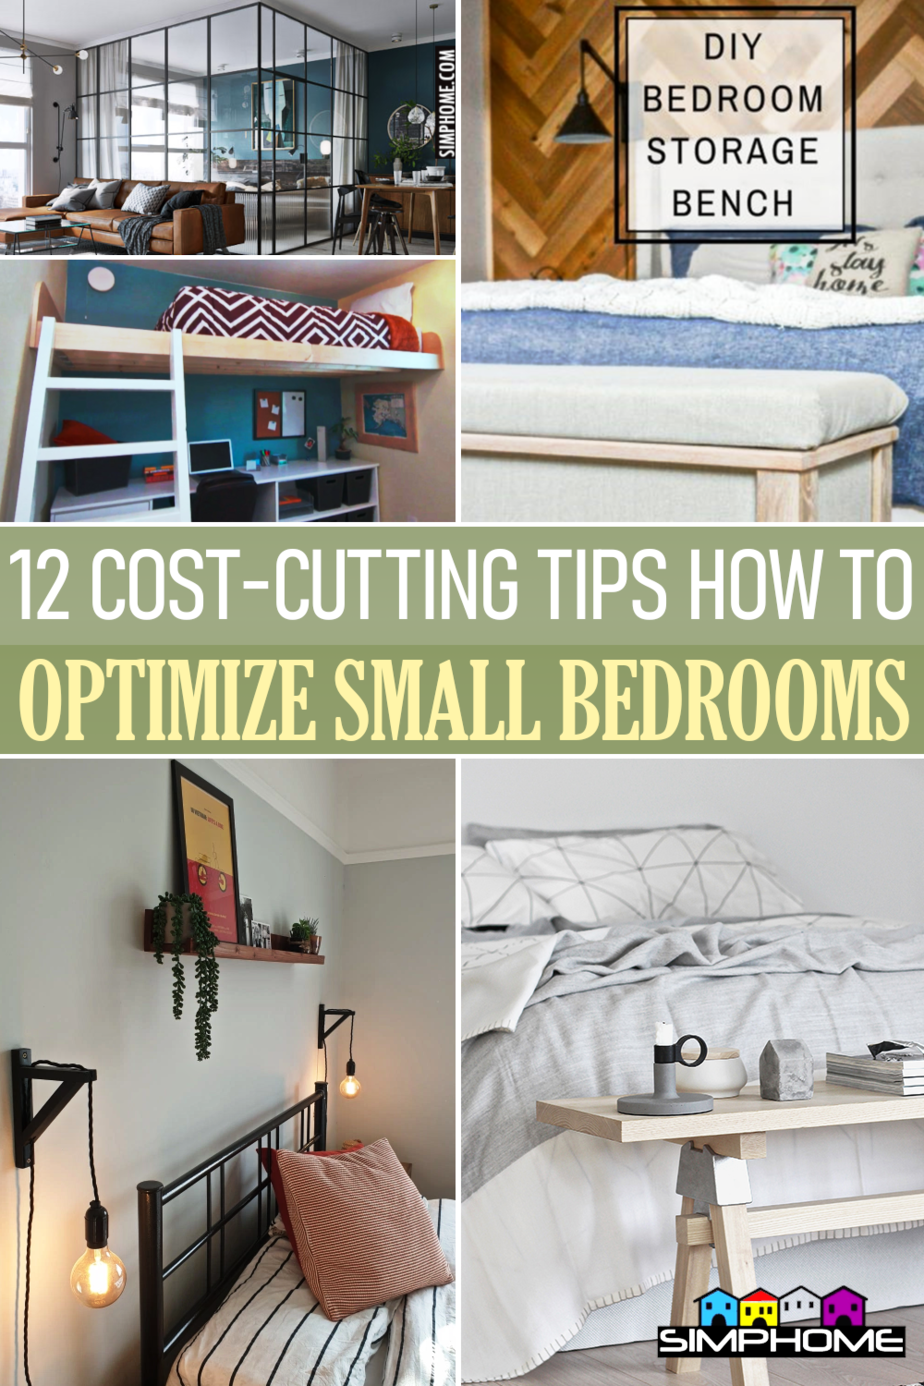 12 Cost Cutting Tips To Optimize A Small Bedroom by Simphome.comFeatured